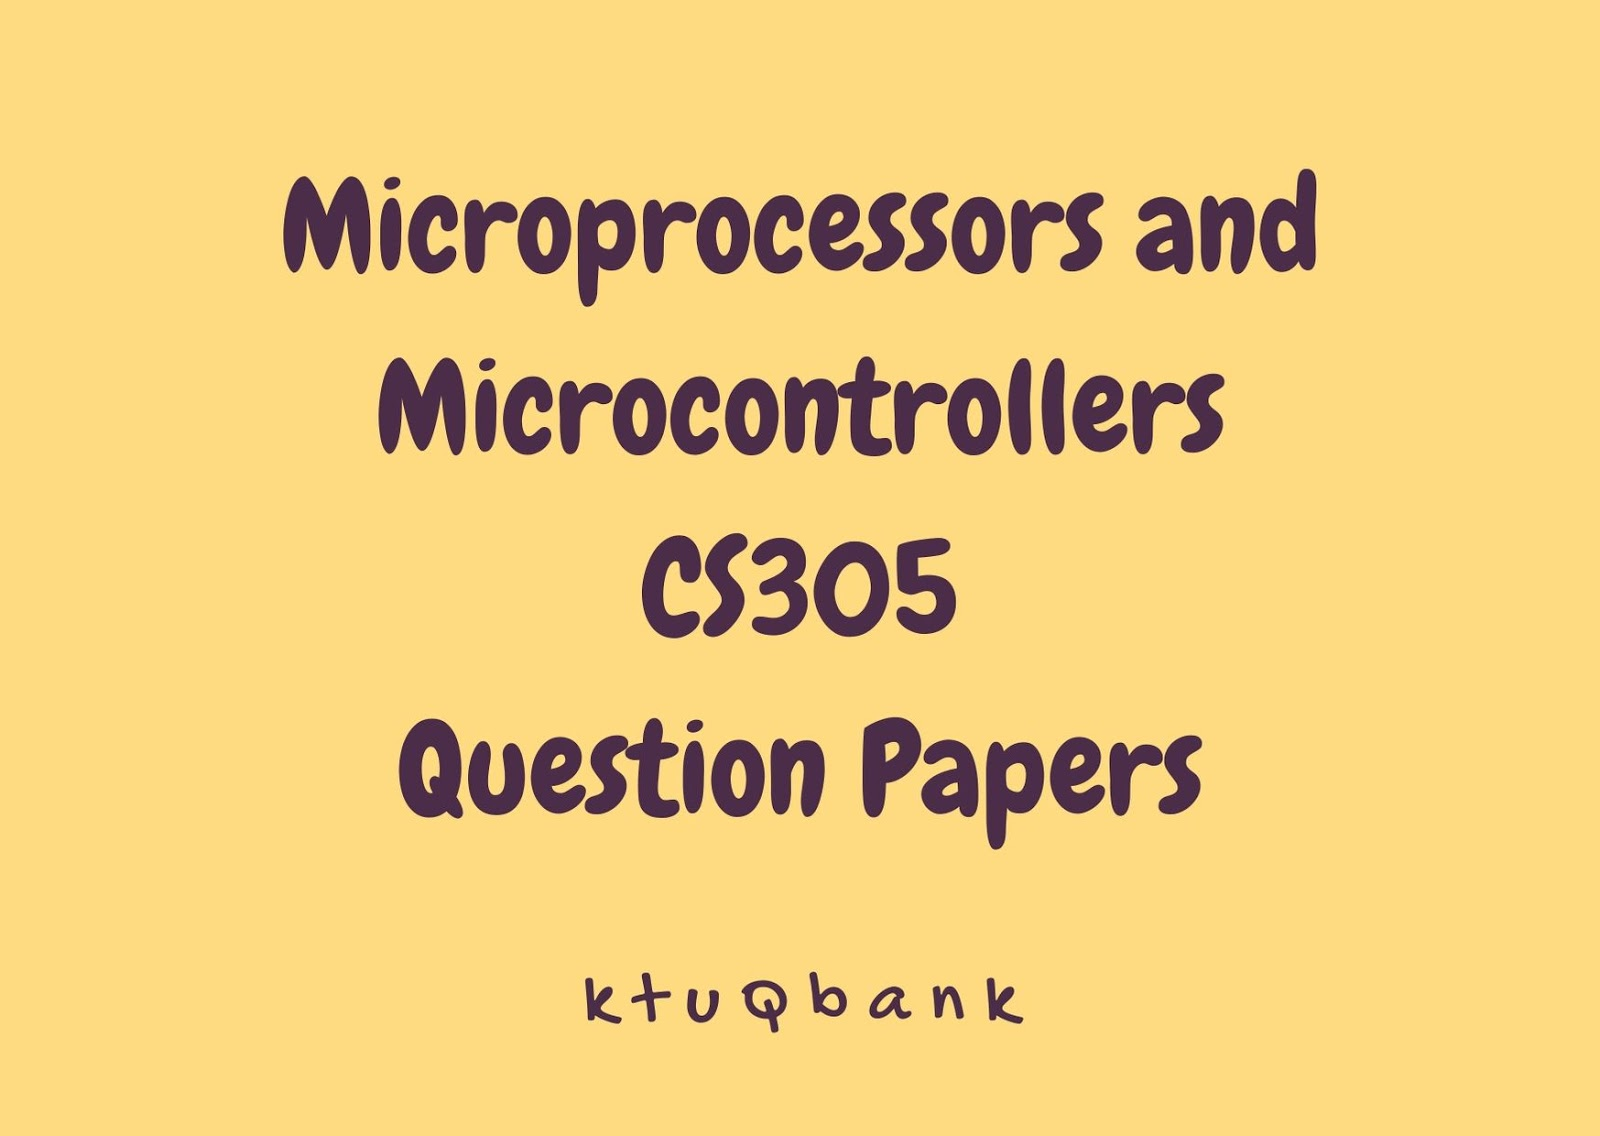 Microprocessors and Microcontrollers | CS305 | Question Papers (2015 batch)